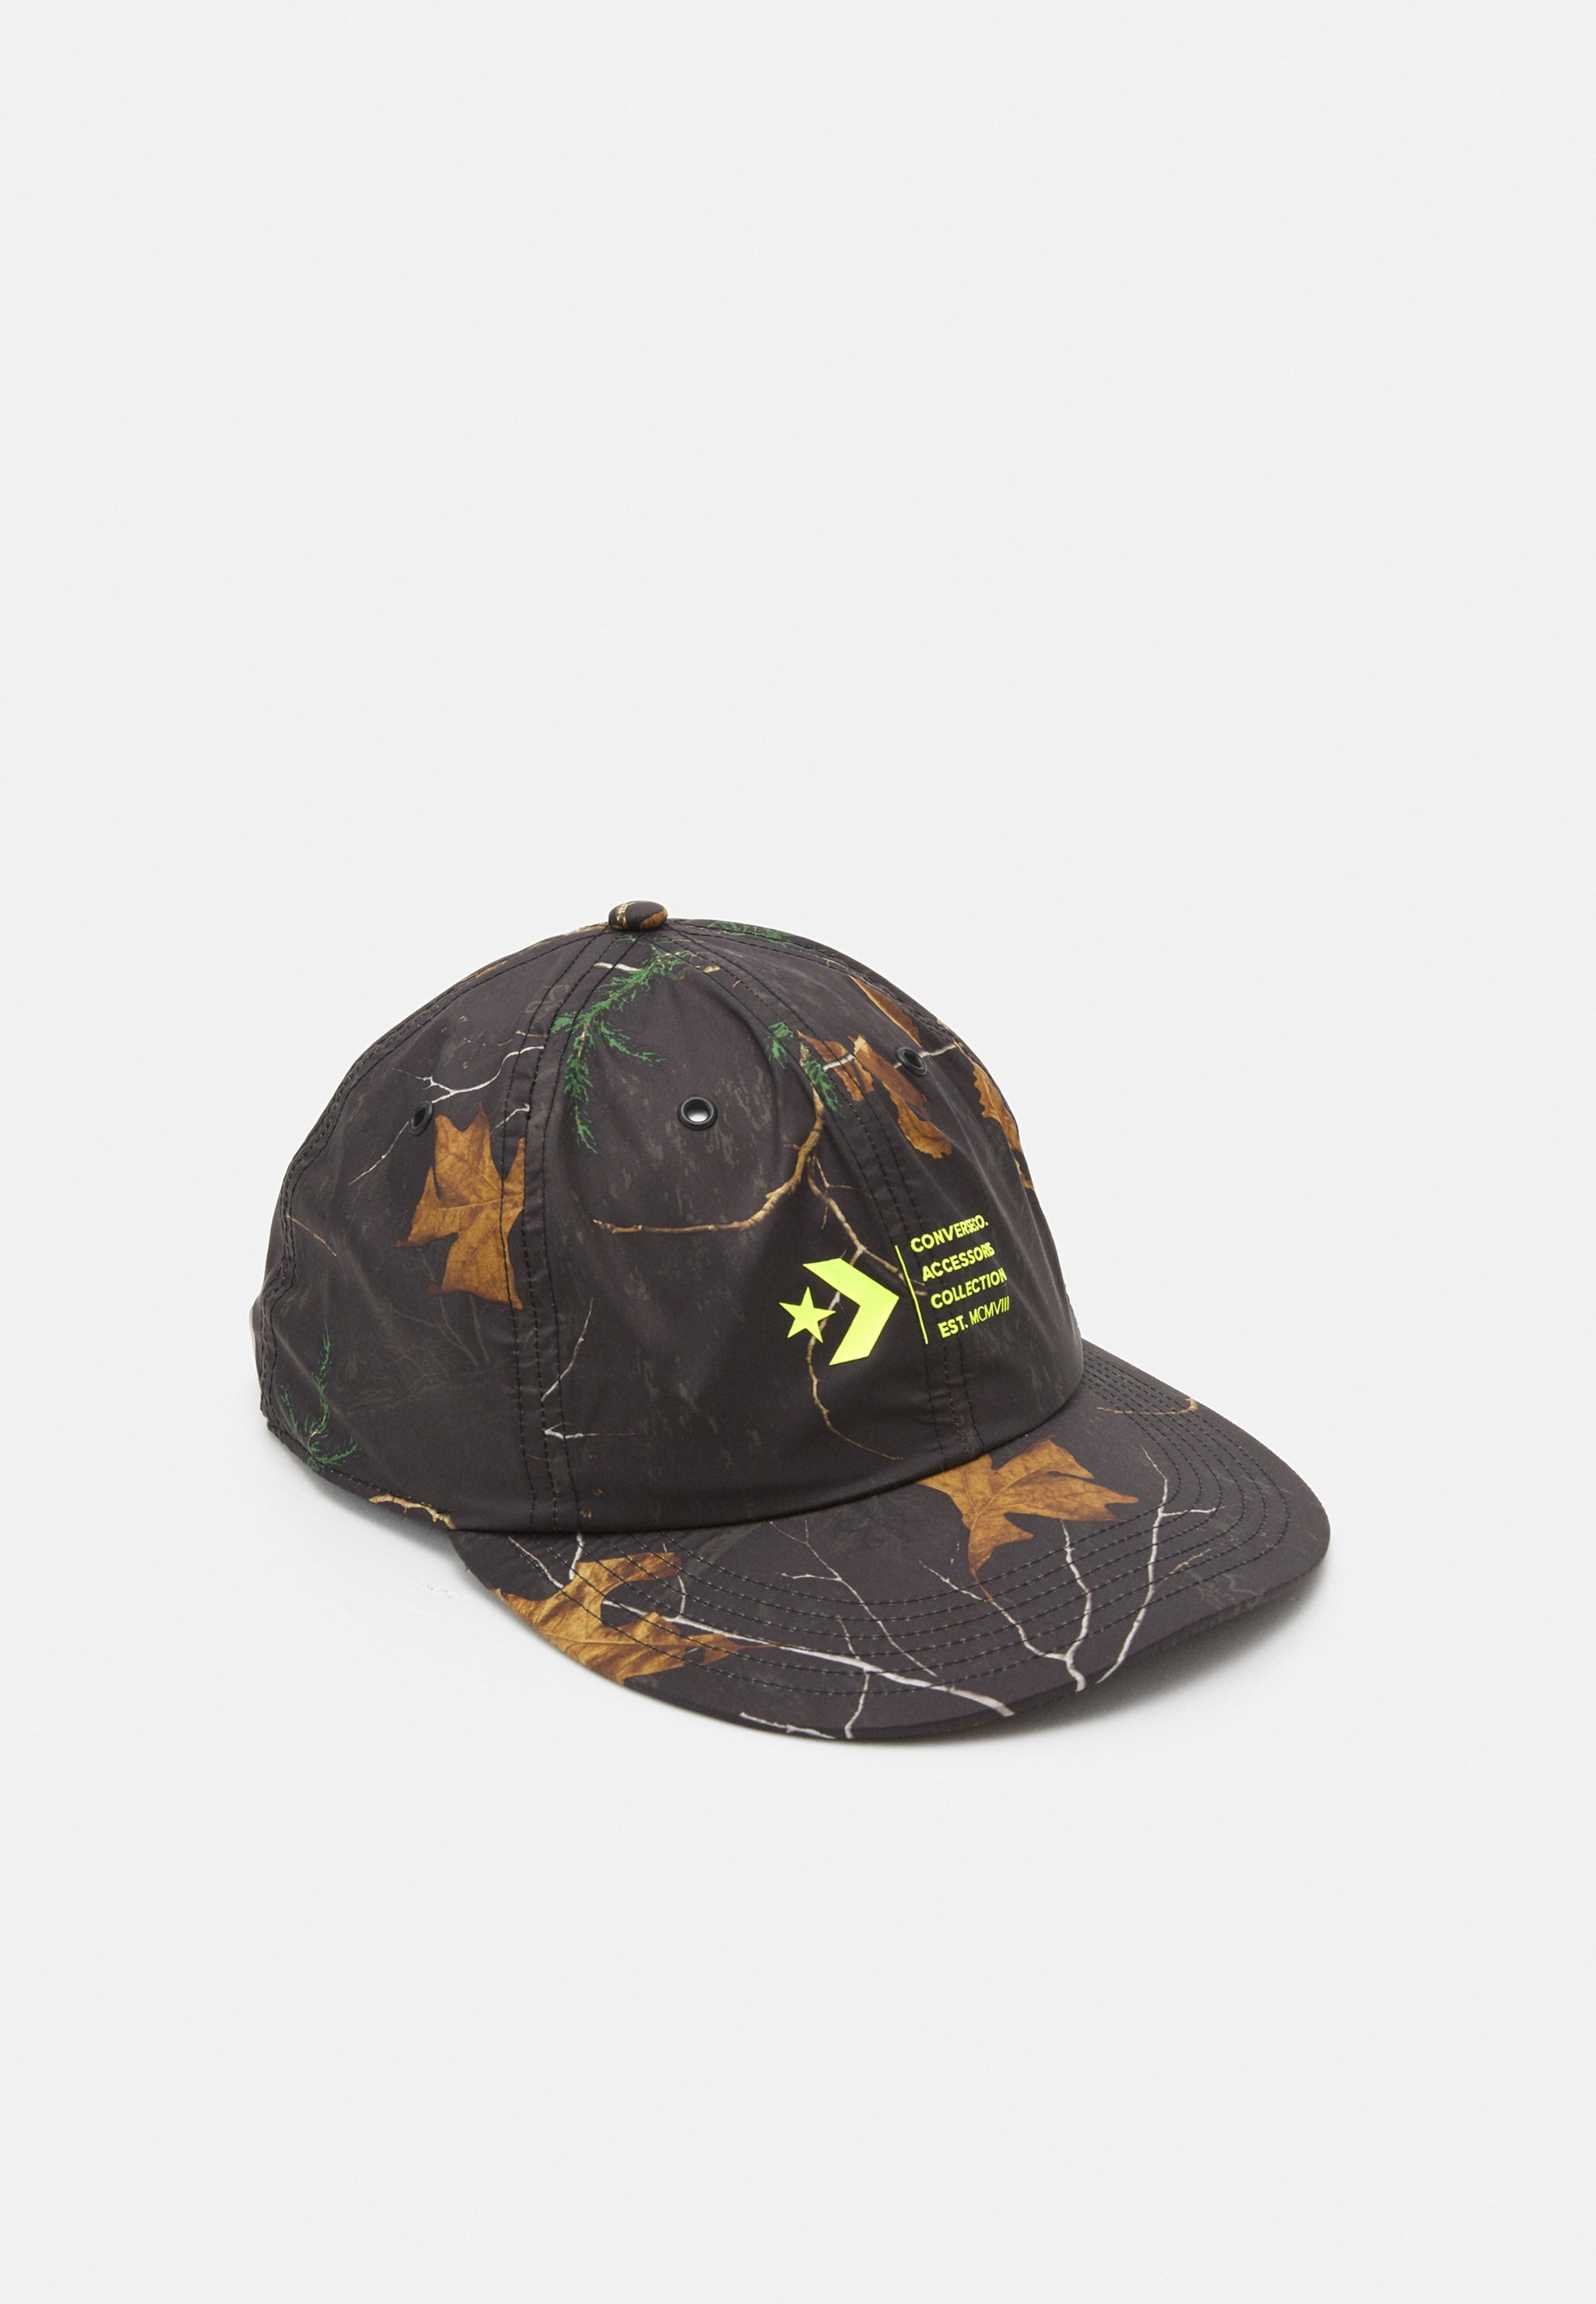 Homme MOUNTAIN CLUB REALTREE STRAPBACK UNISEX - Casquette